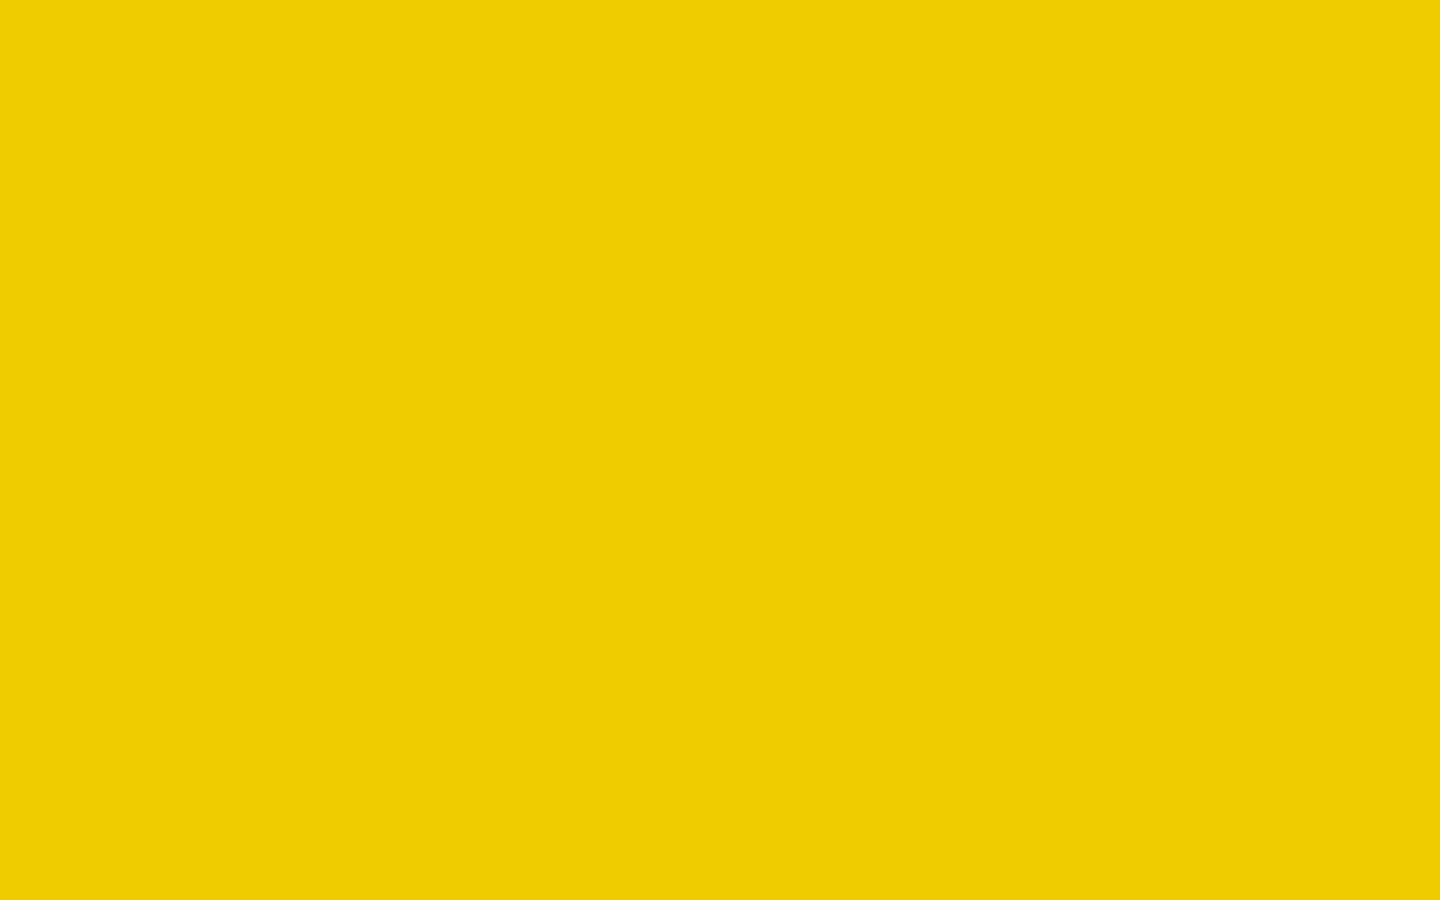 1440x900 Yellow Munsell Solid Color Background